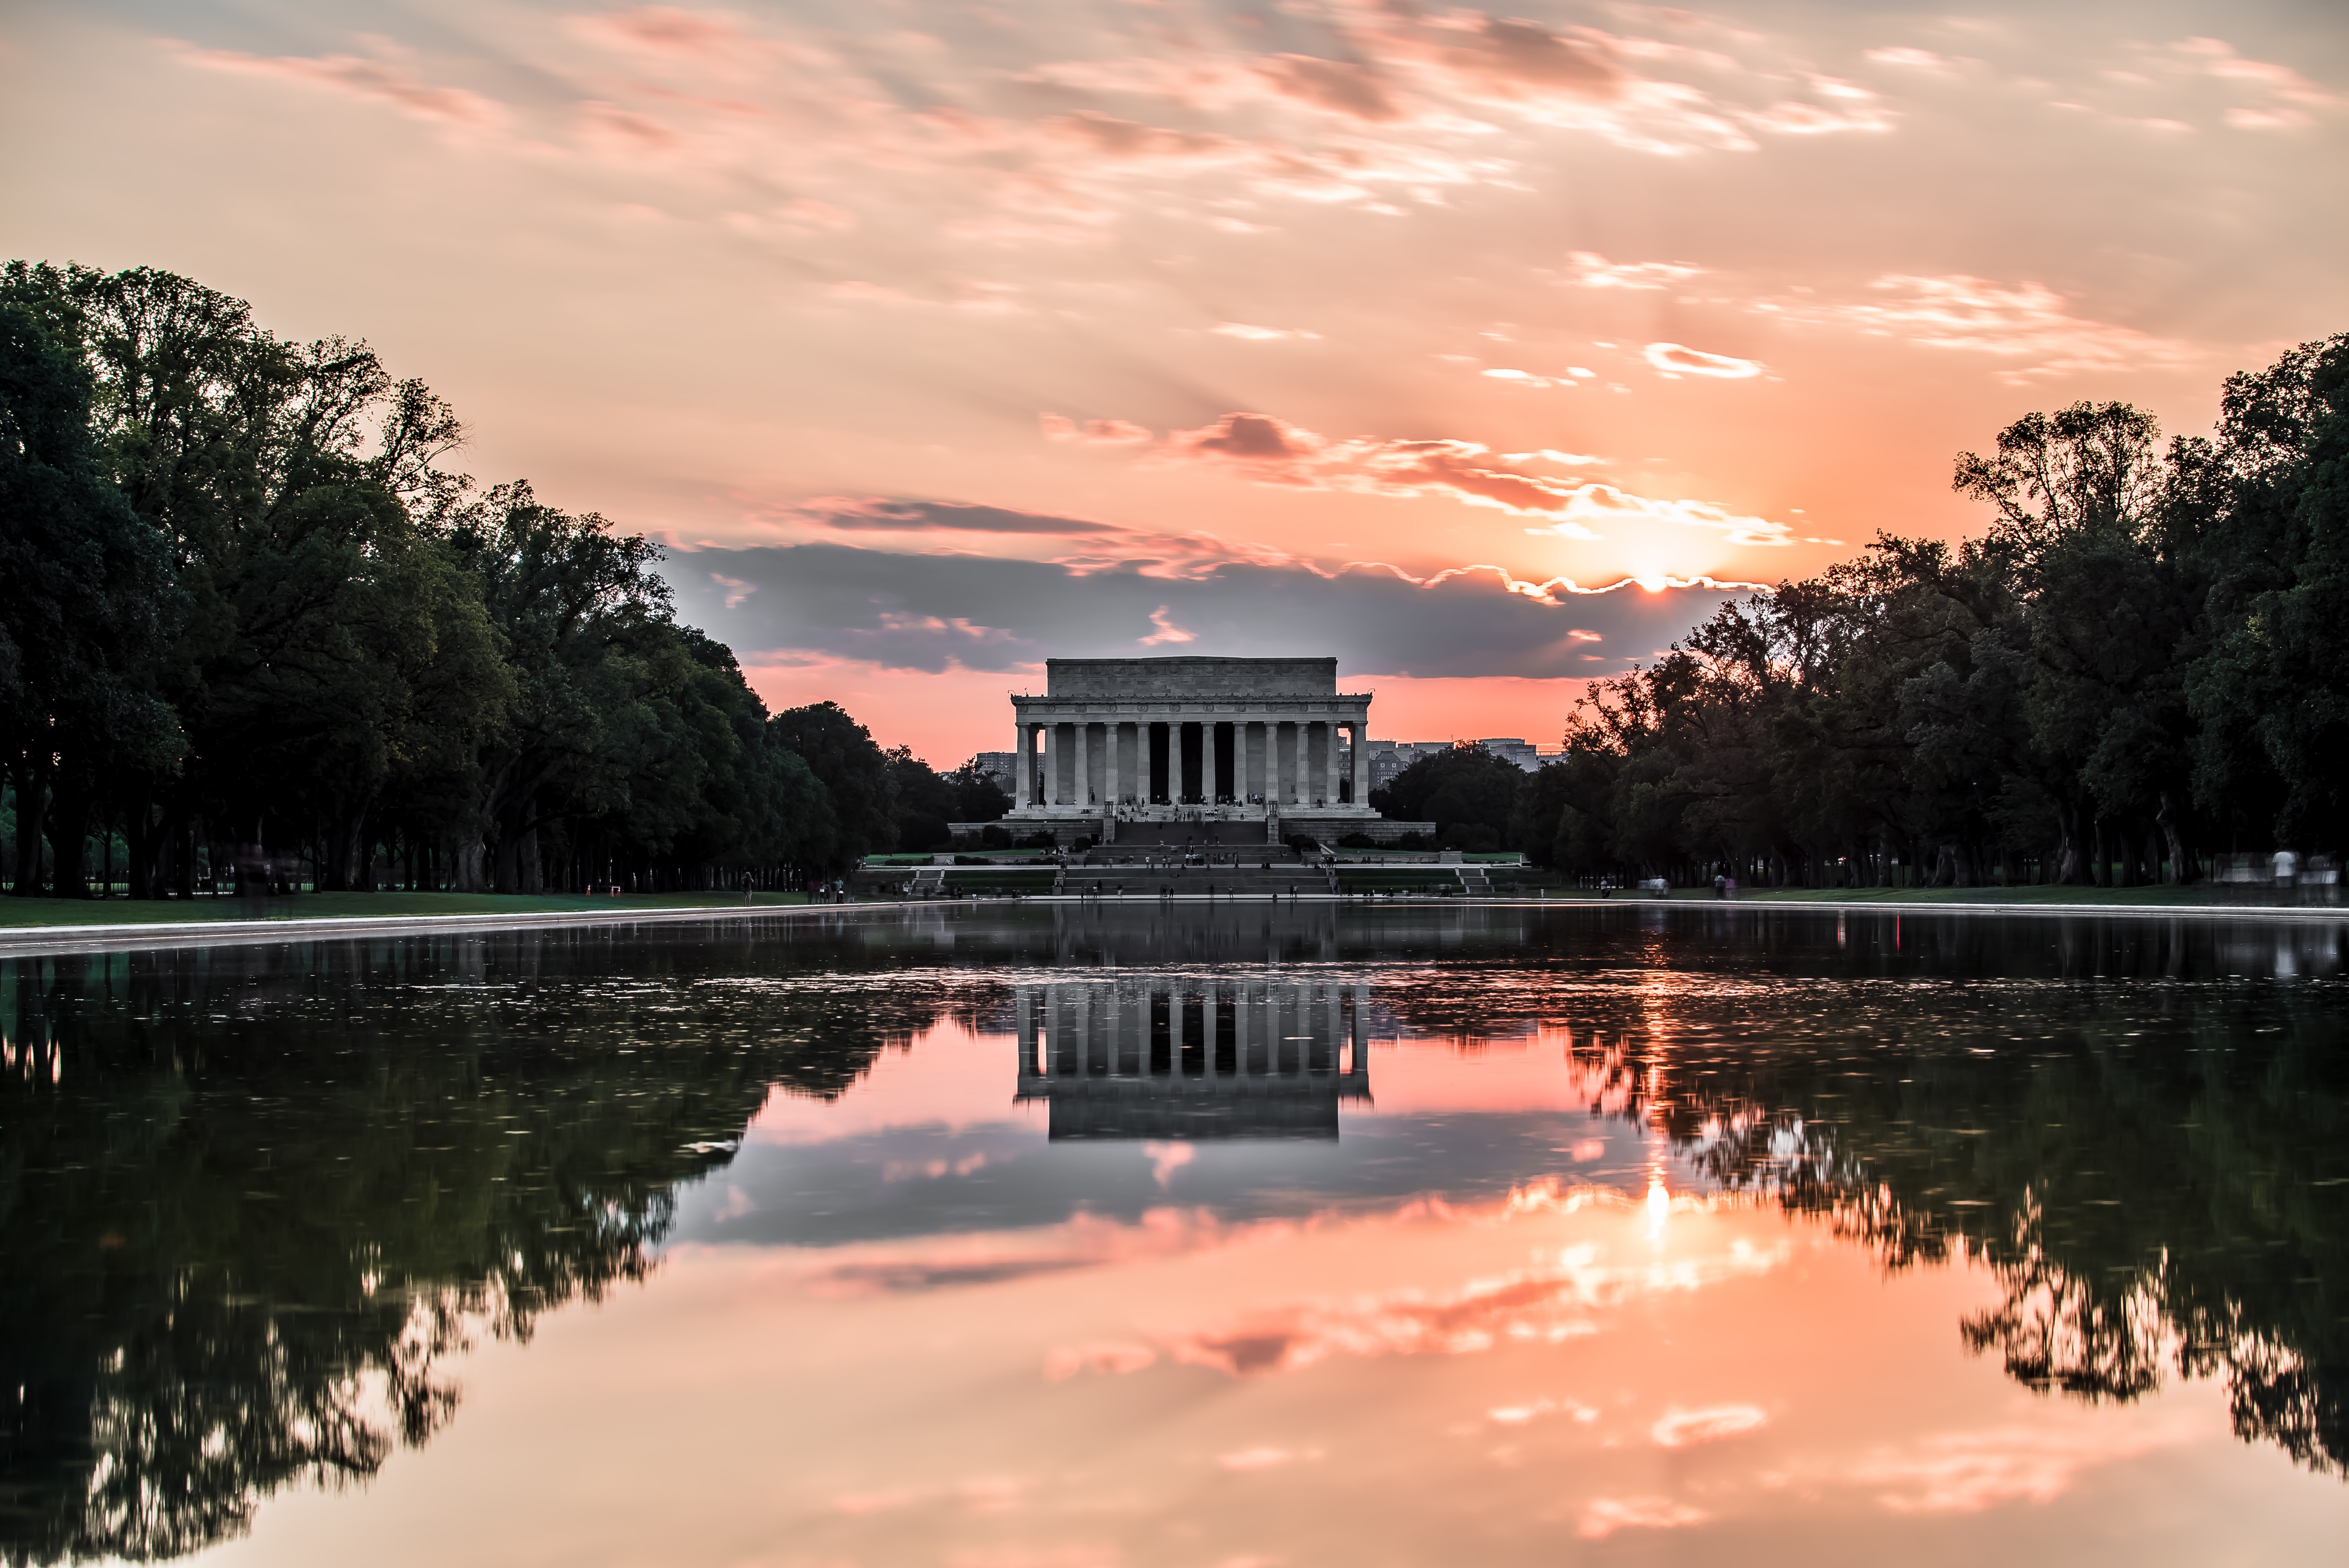 Honeymoon in Washington, DC: A Capital Experience